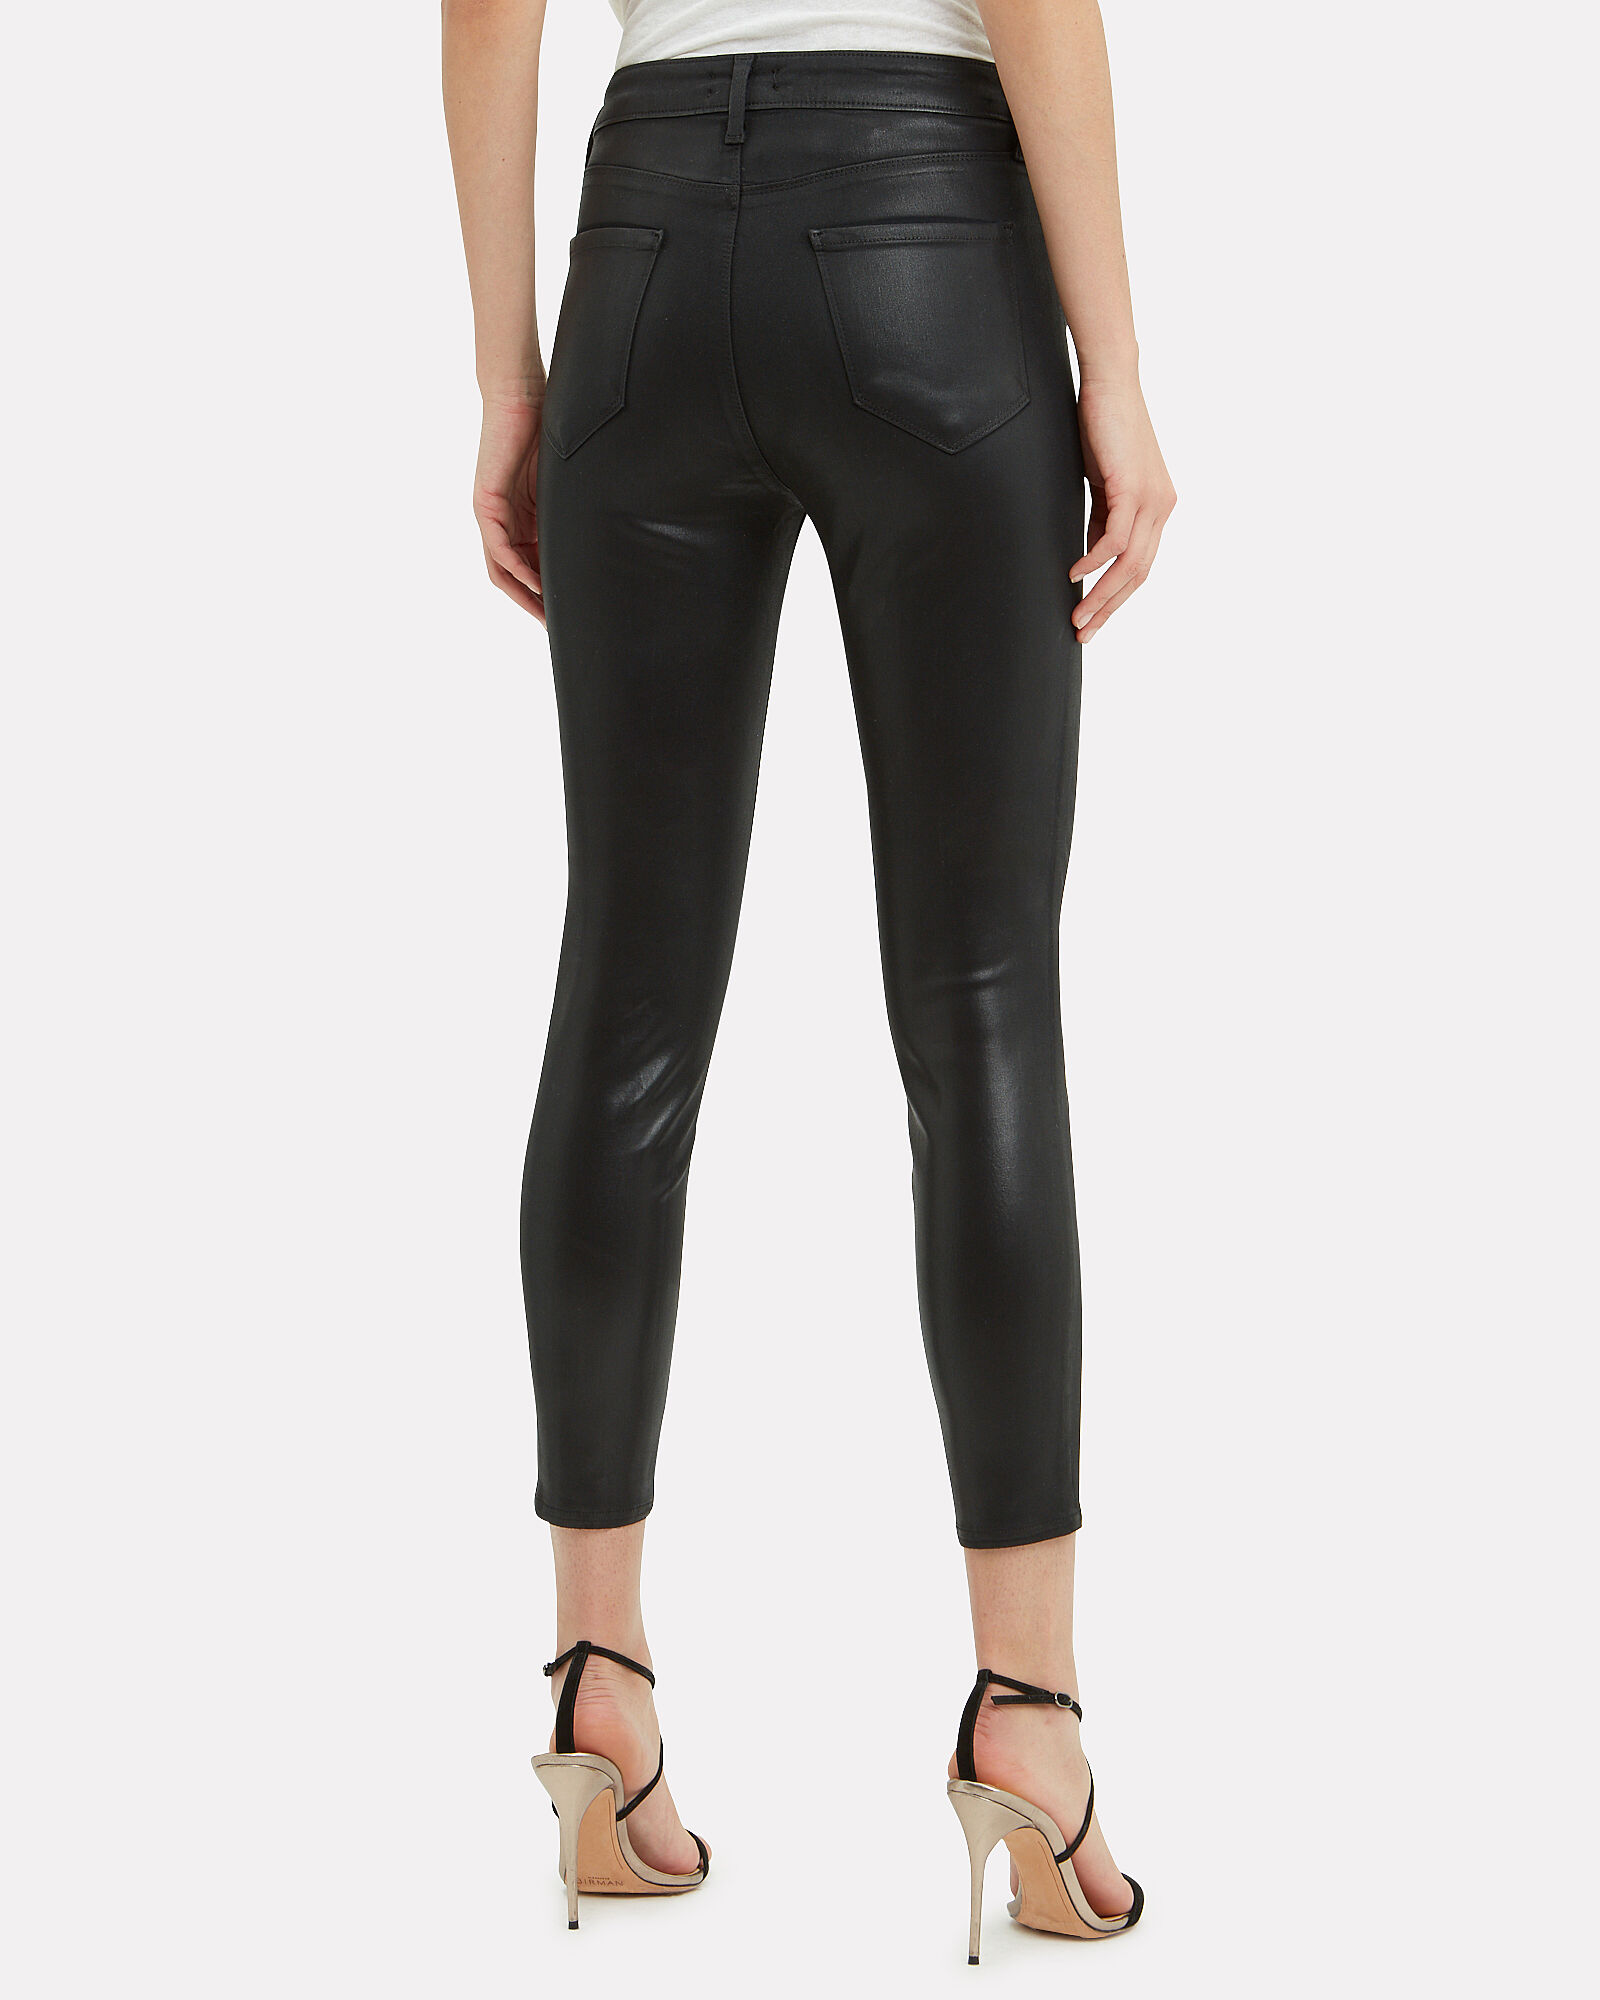 Margot Coated Skinny Jeans, BLACK, hi-res